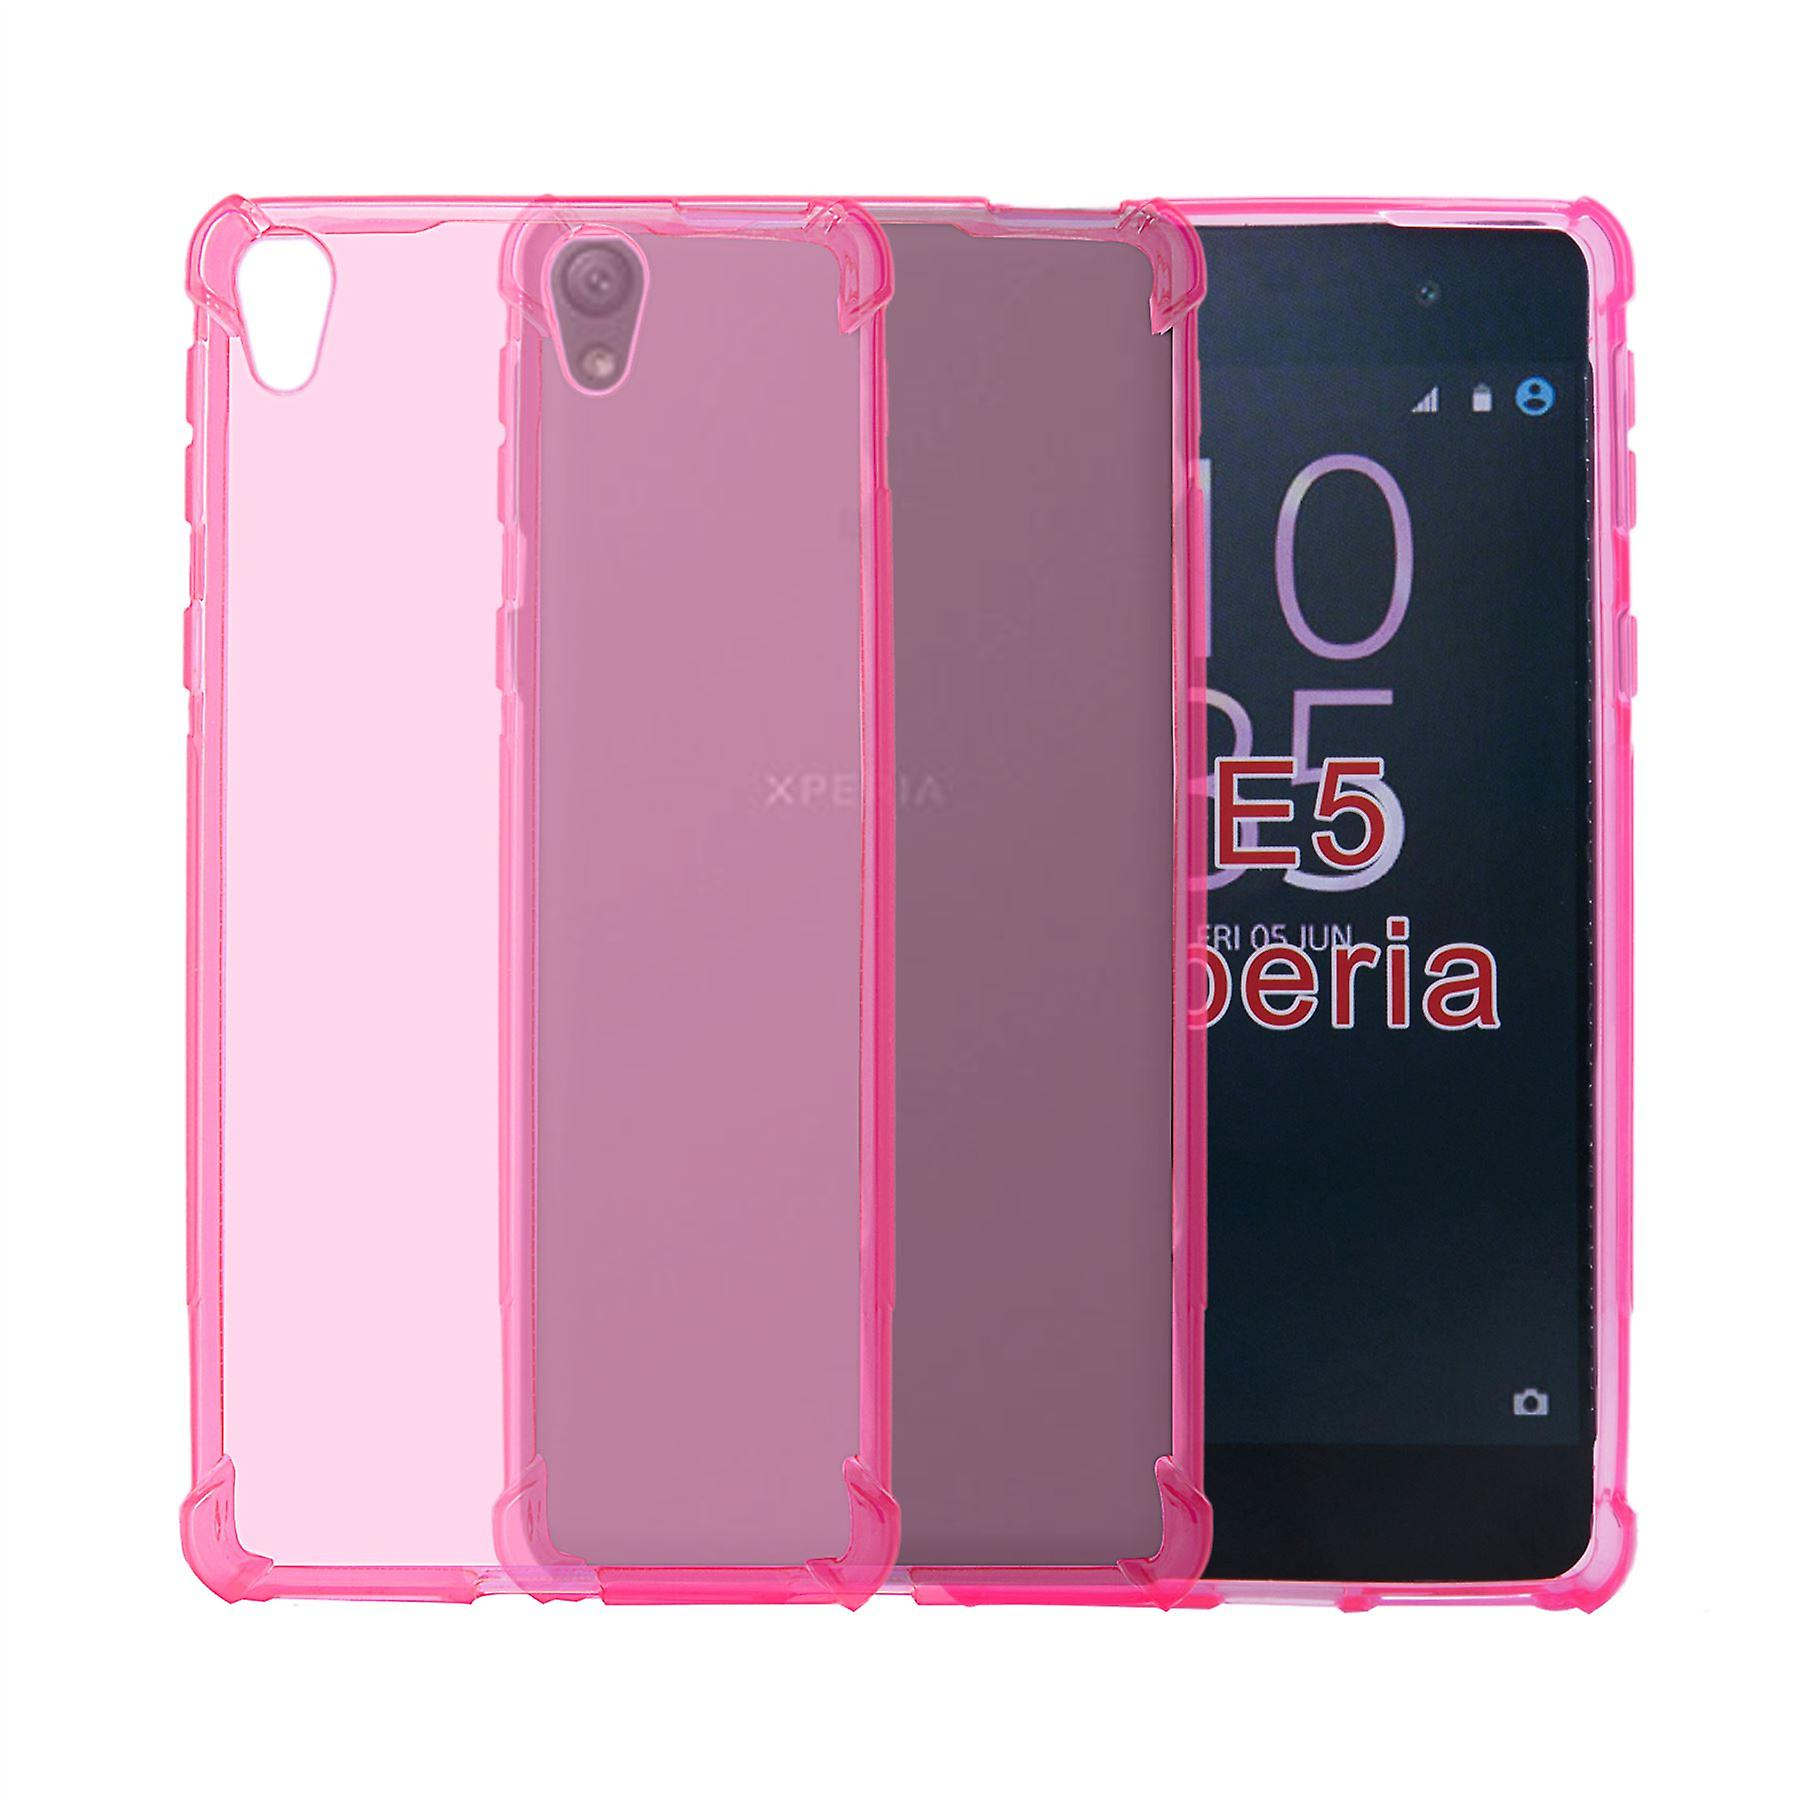 32nd Tough Gel case + stylus for Sony Xperia E5 - Hot Pink